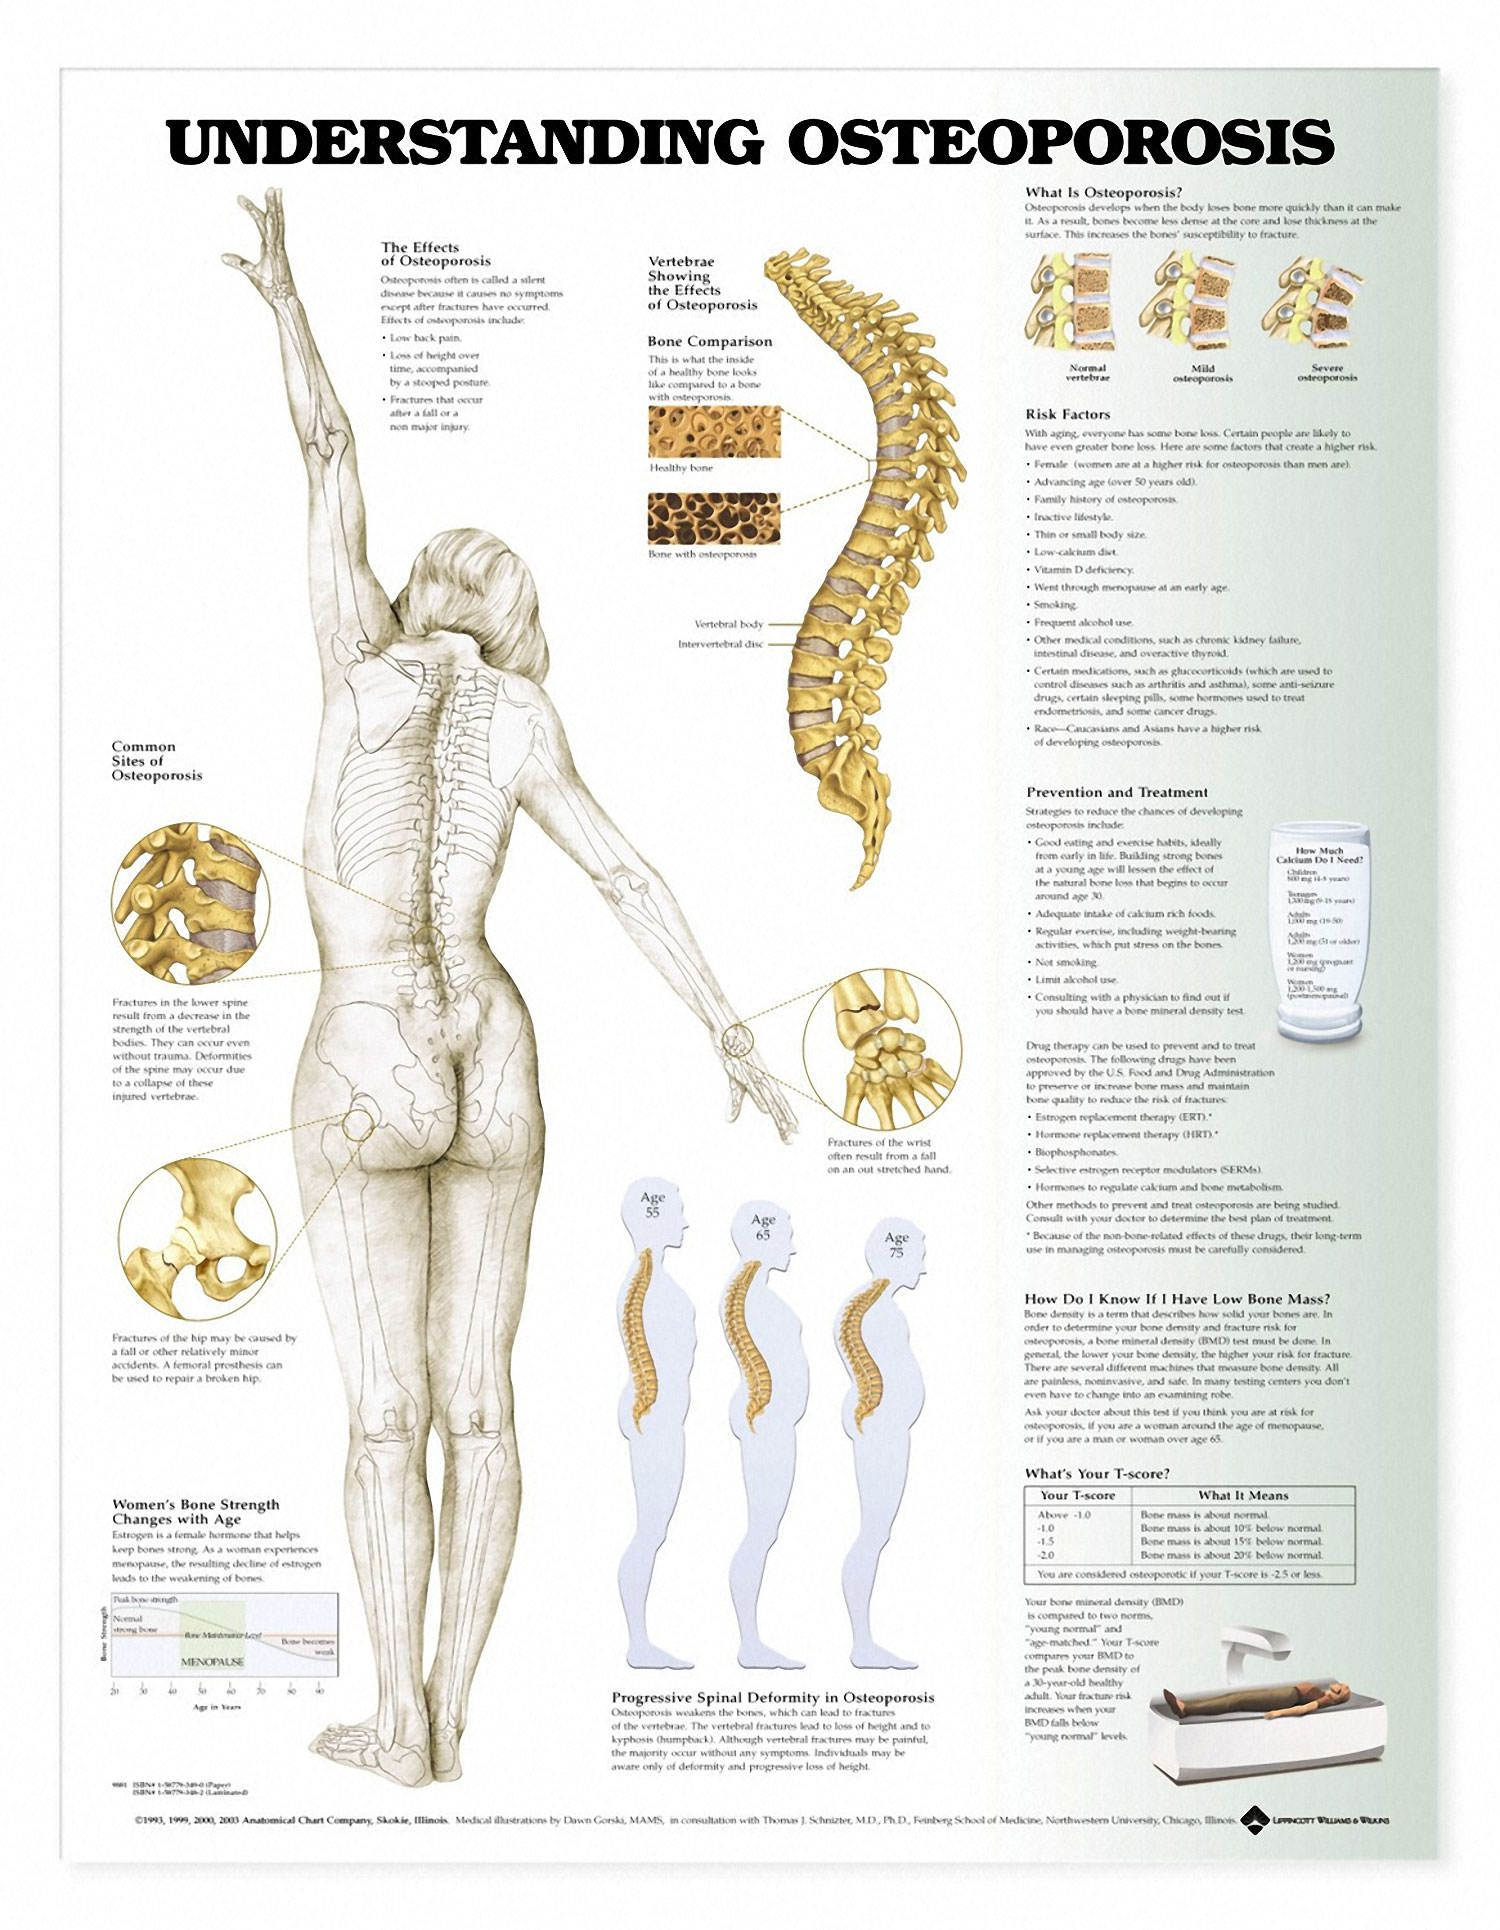 Calcium and Vitamin D Combination to Reduce Osteoporosis Risk ...